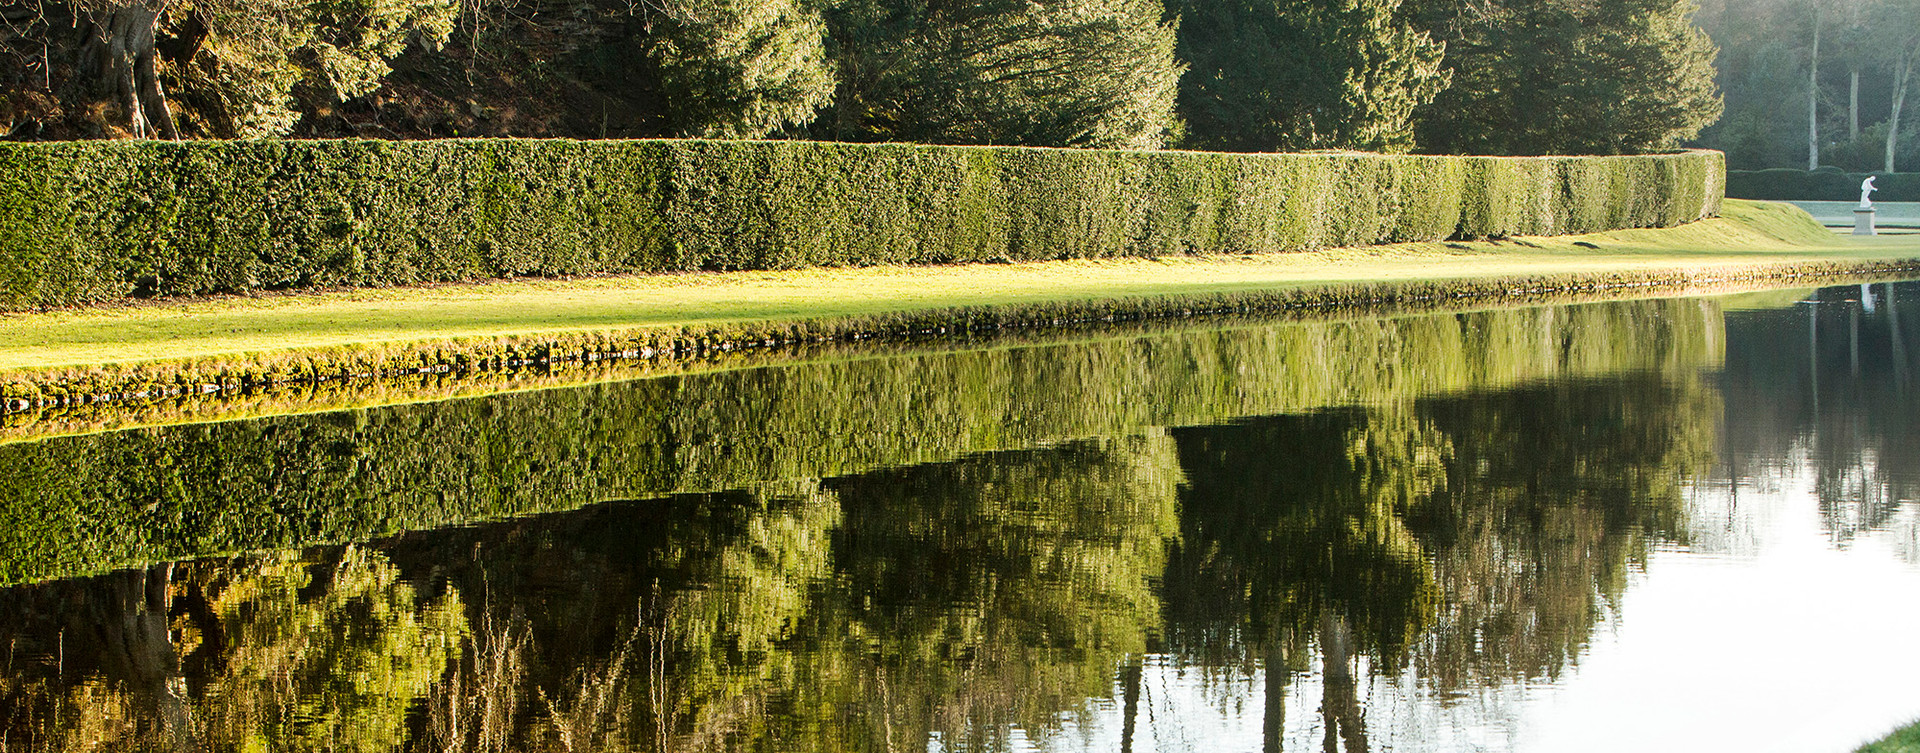 Water Garden, Studley Royal